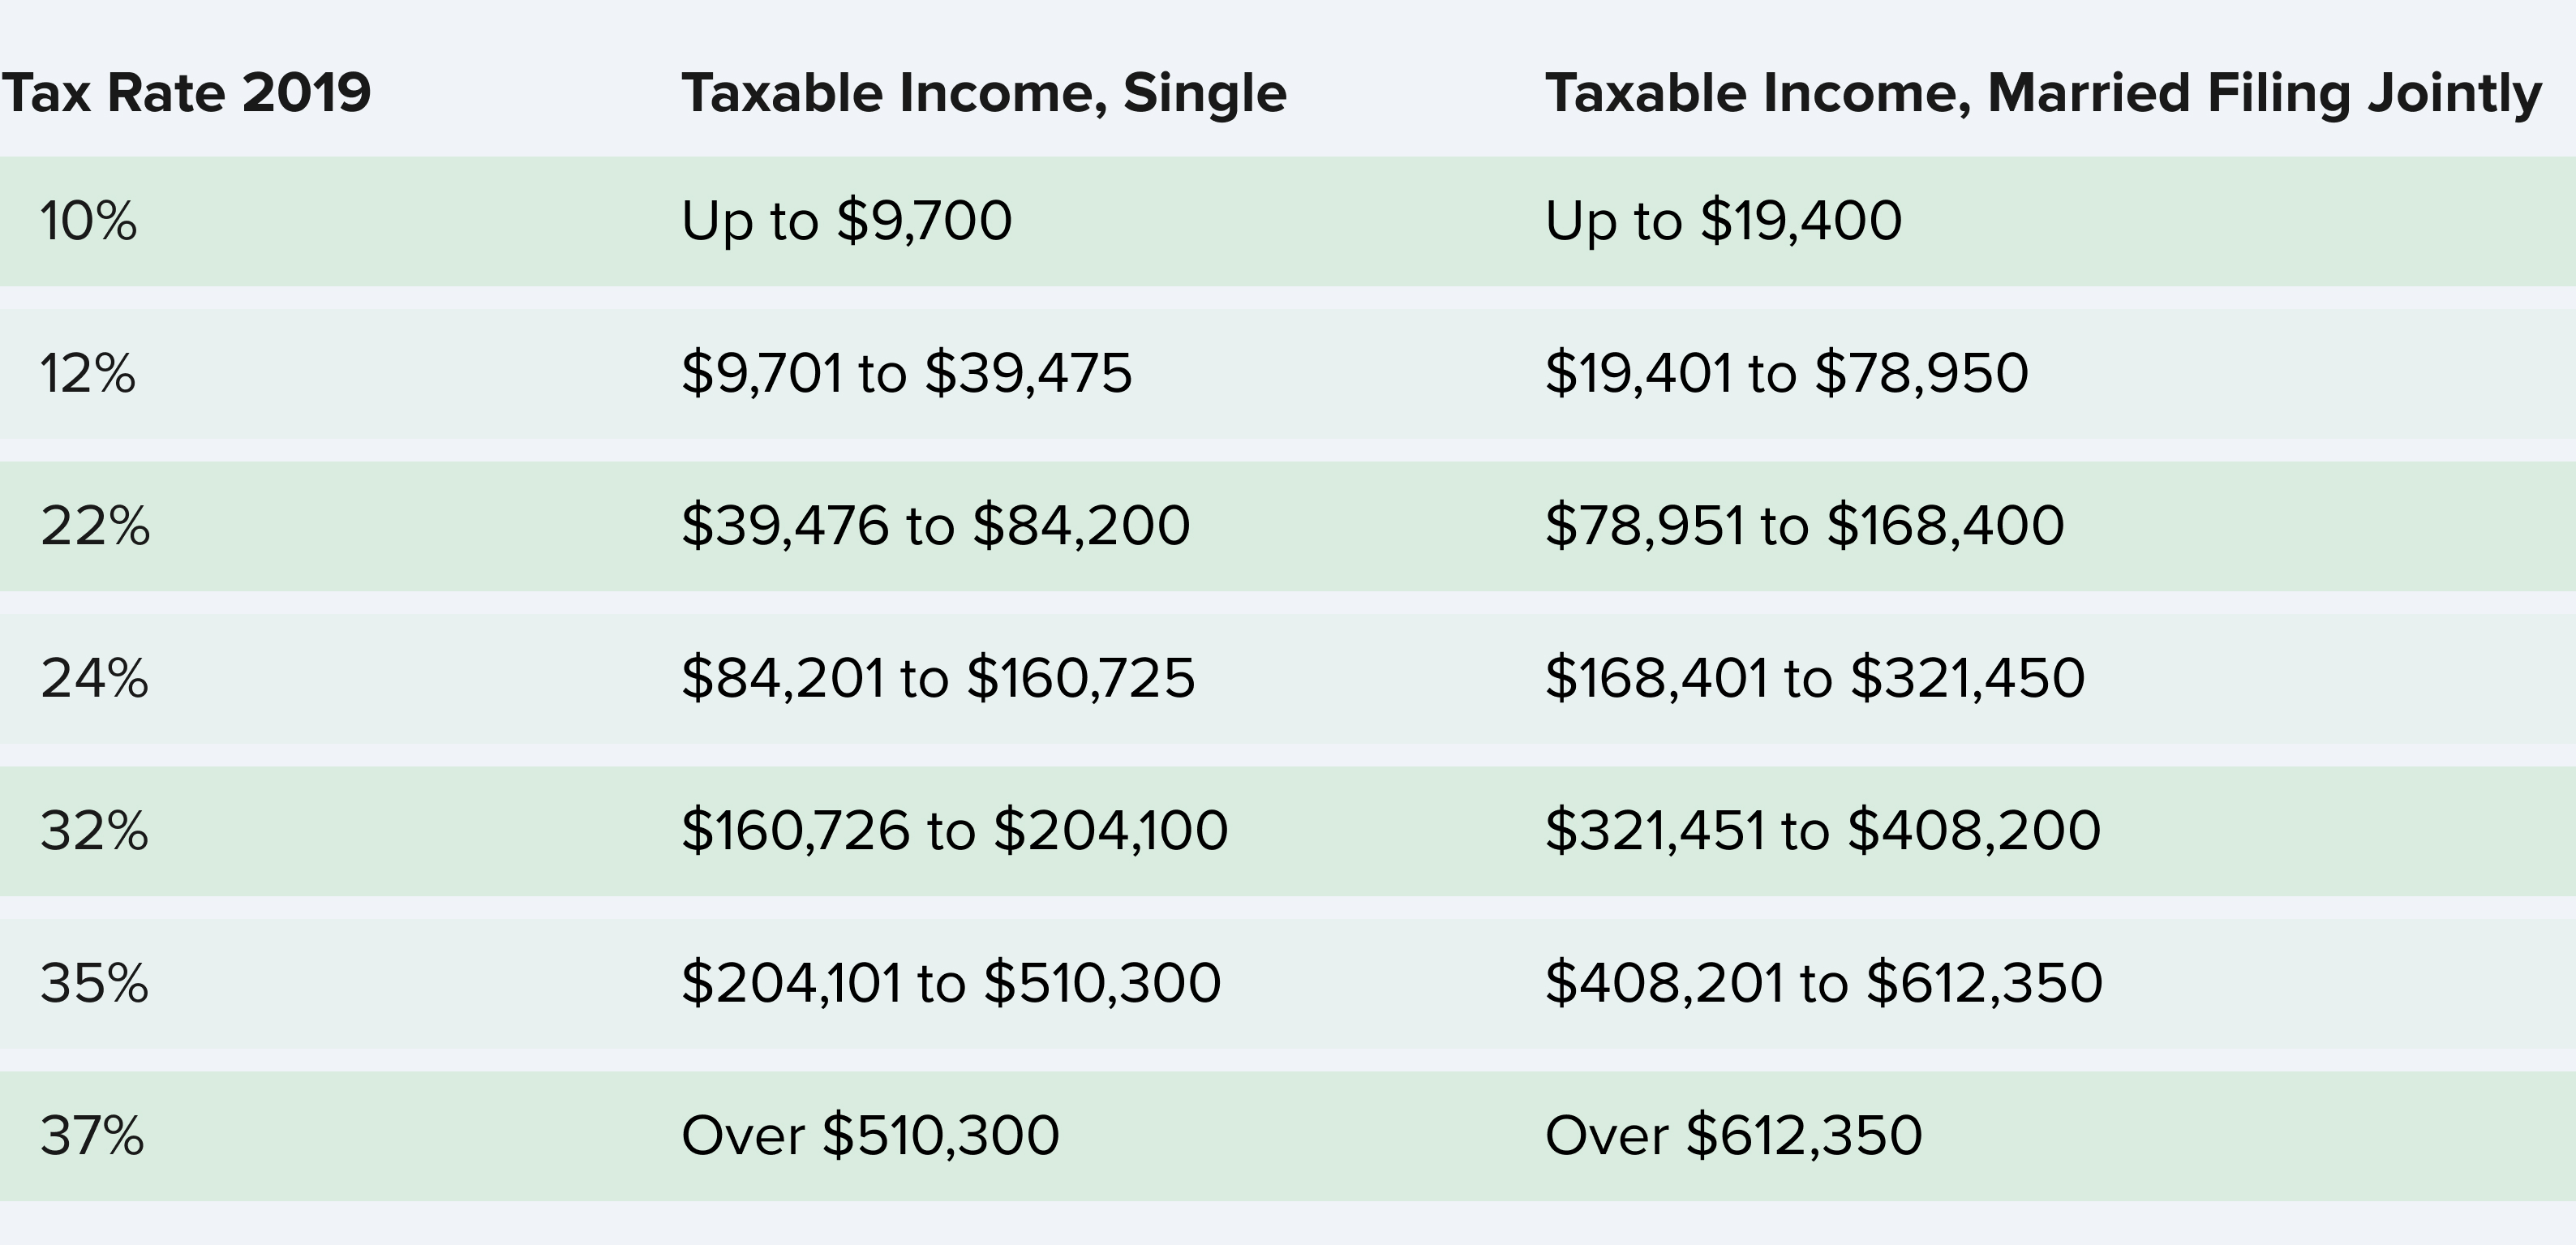 tax rate 2019